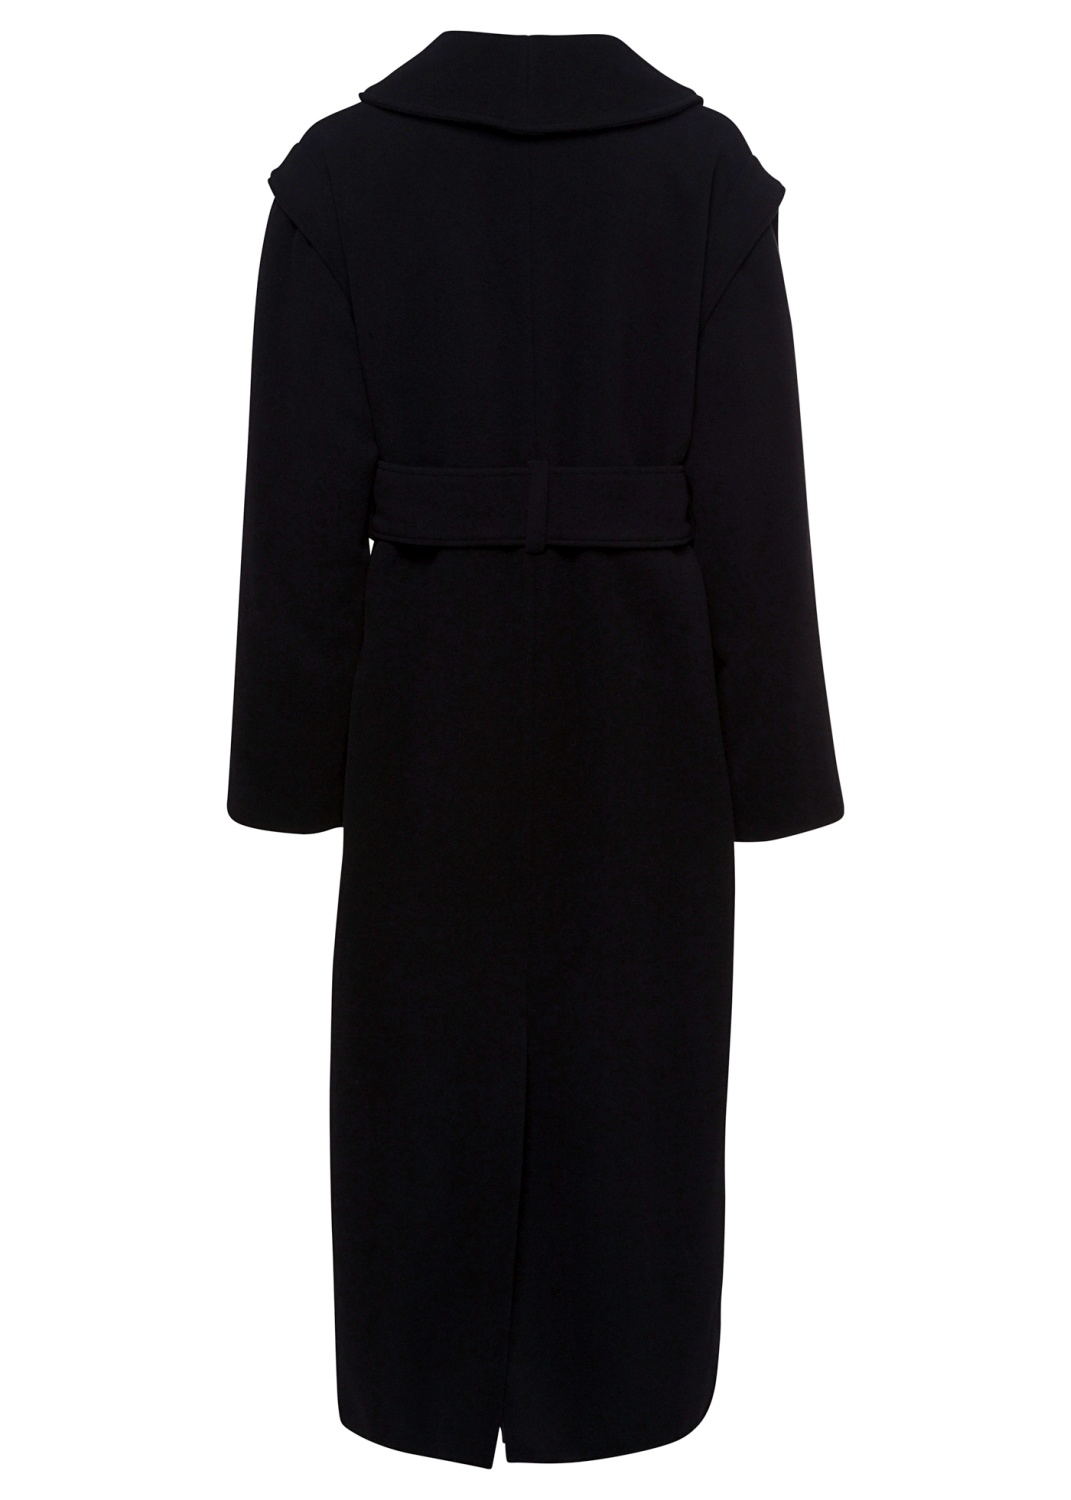 OVERSIZED COAT WITH LAPEL AND BELT image number 1